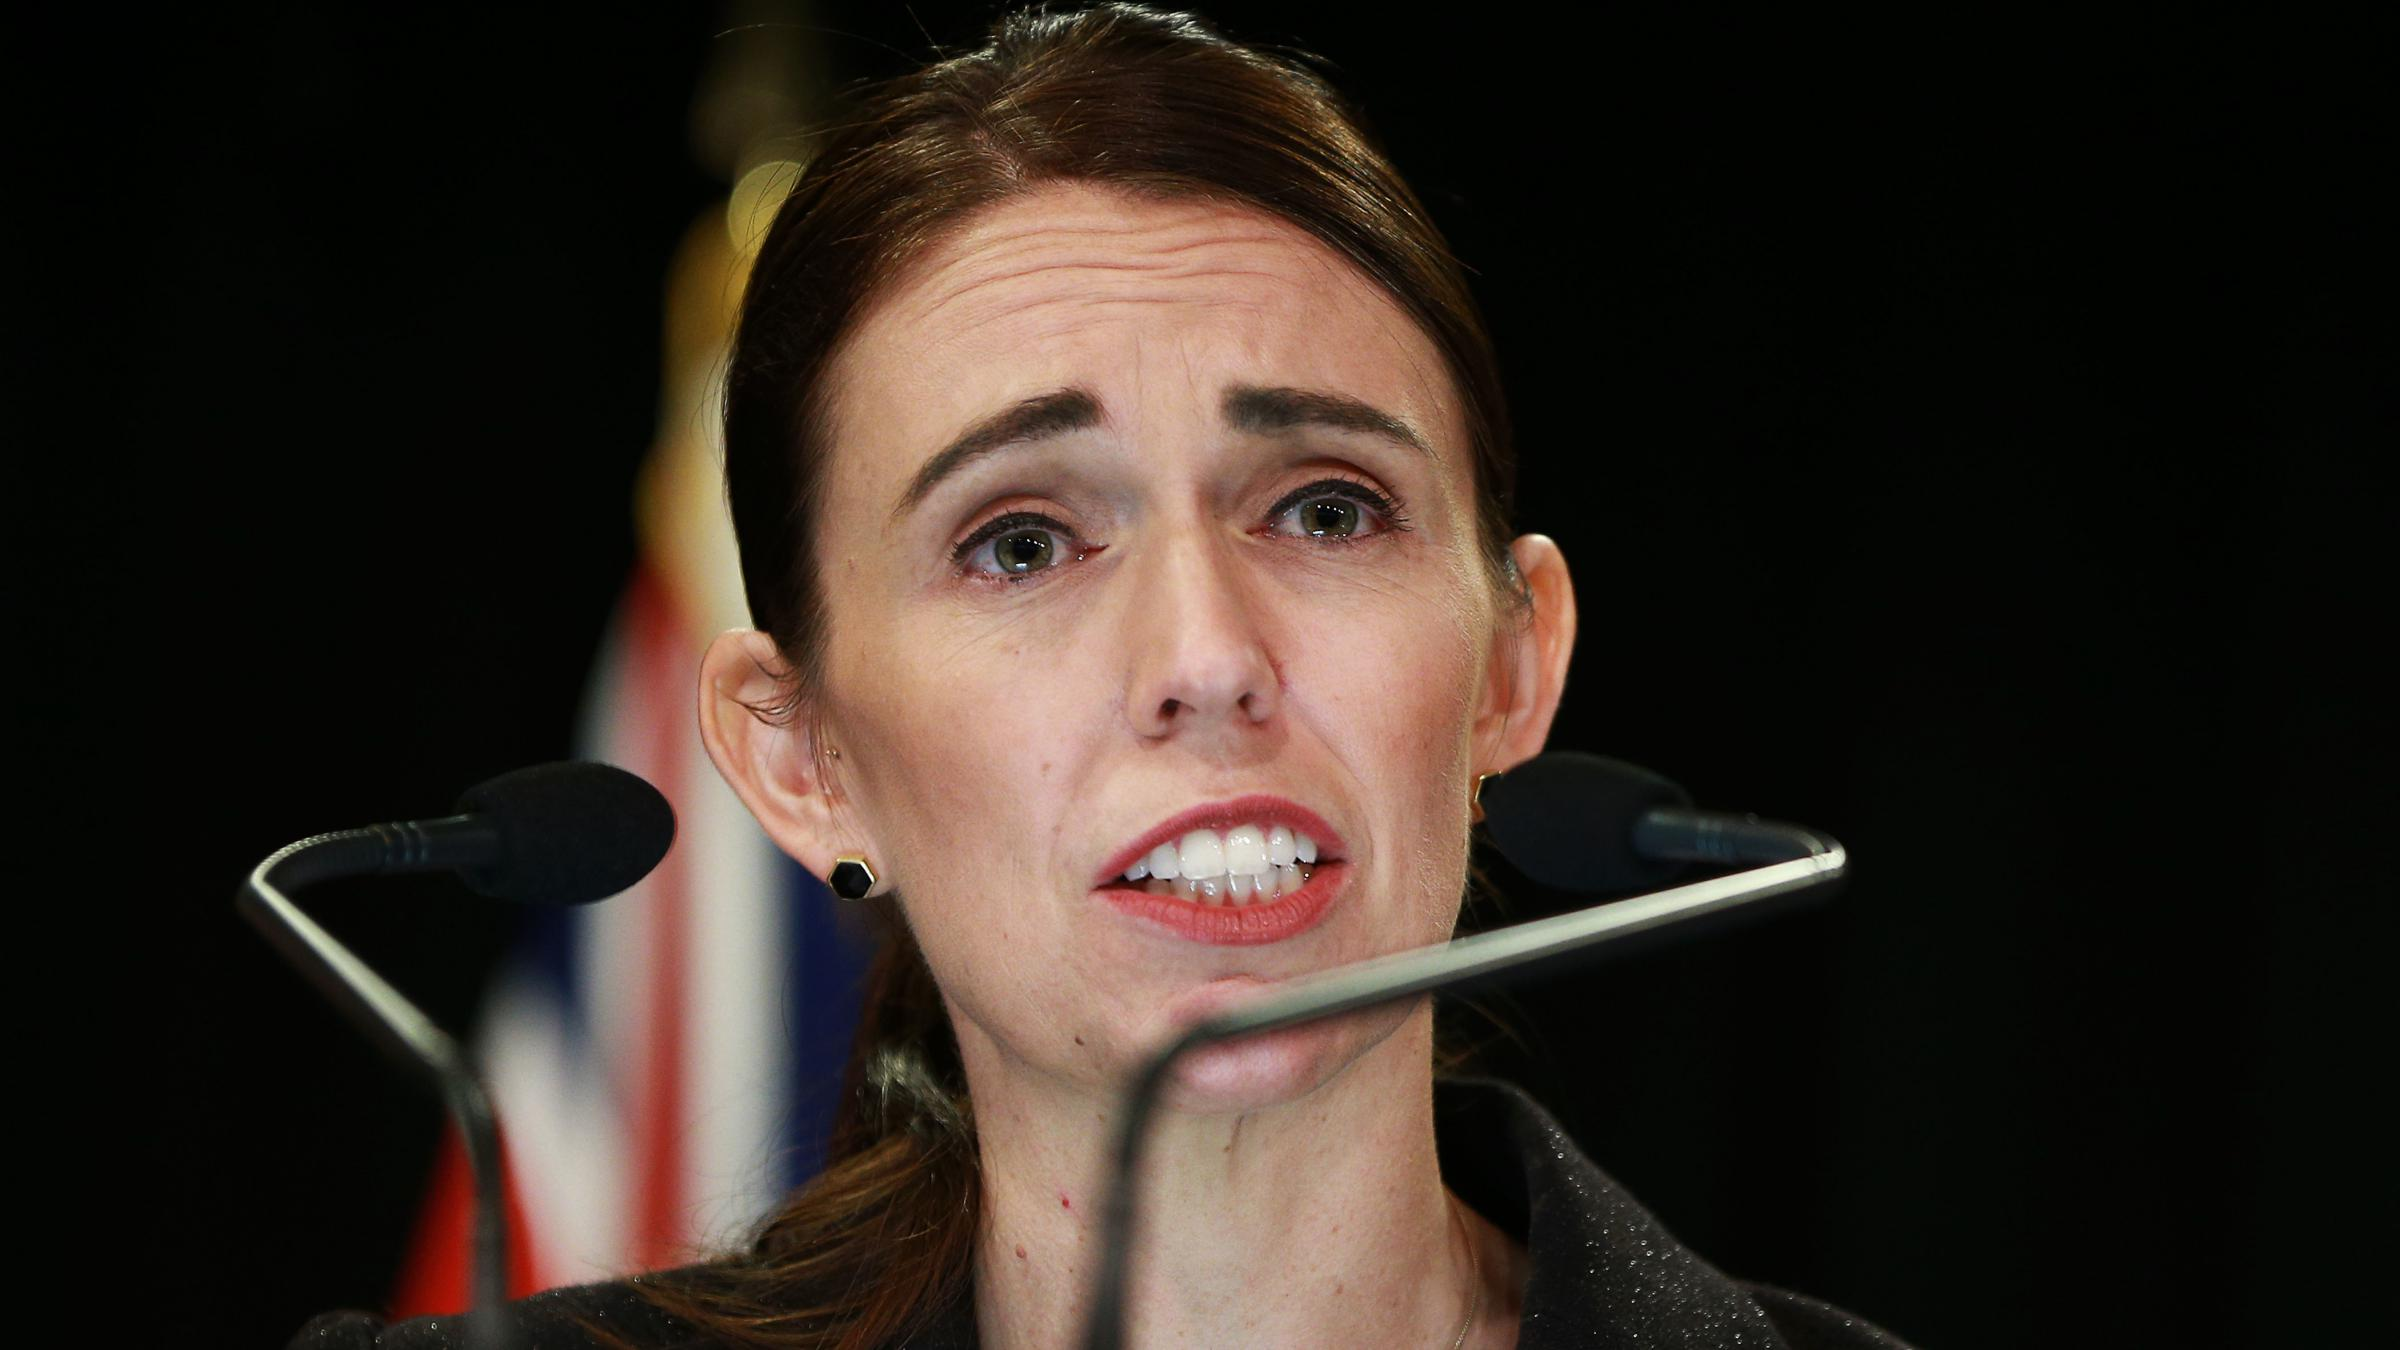 New Zealand Mosque Attack Hd: New Zealand Banning Weapons Like Those Used In Mosque